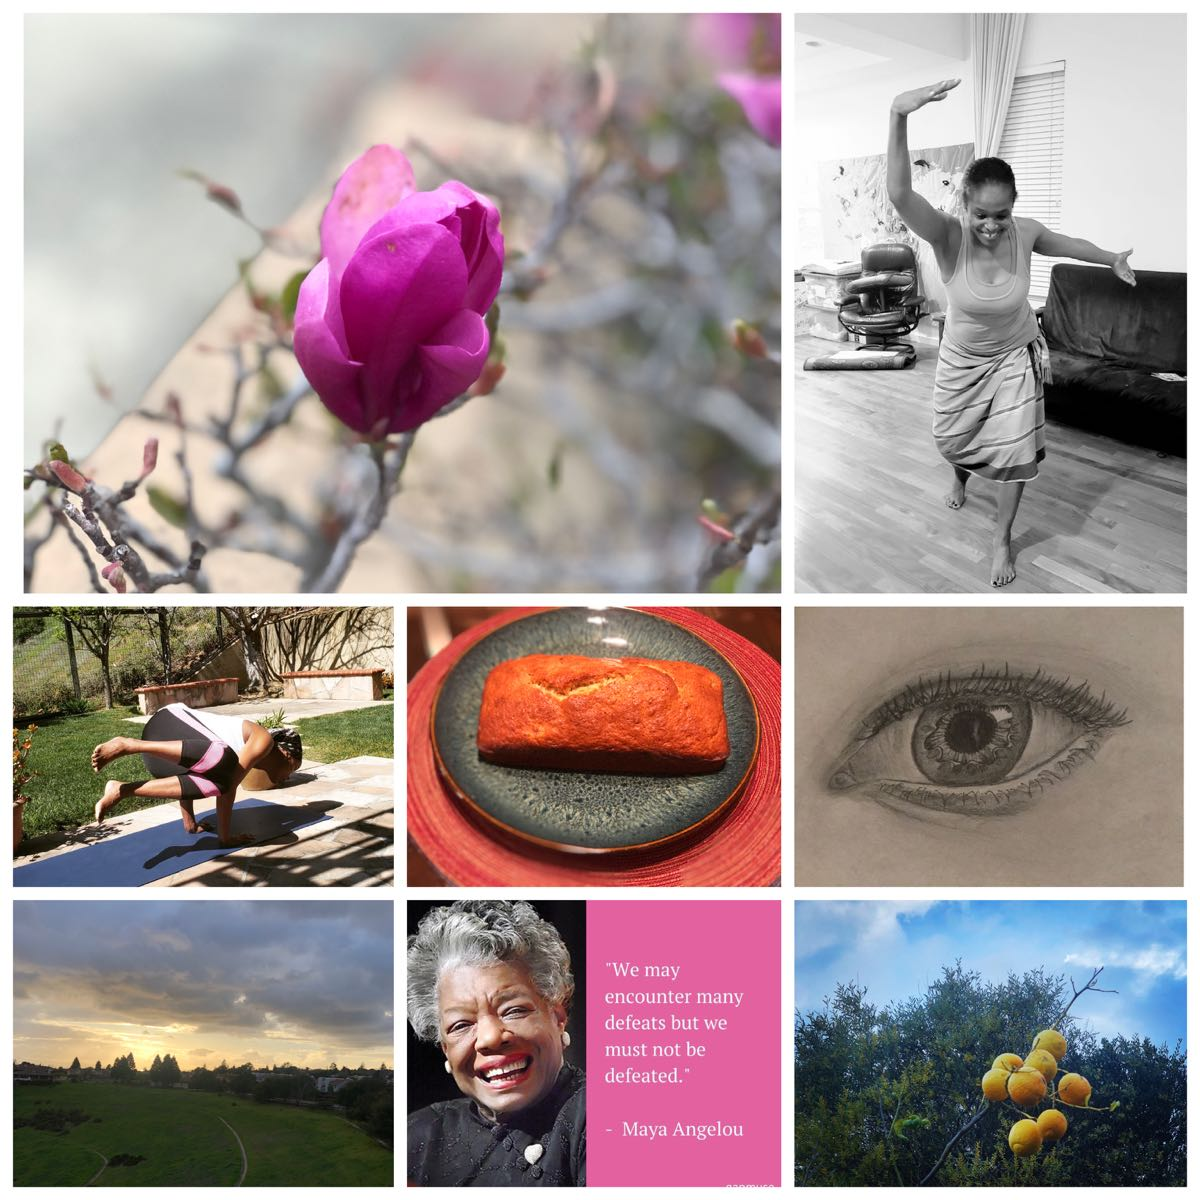 Collage of beautiful pink flower, woman dancing West African Dance in her living room, woman doing the side crow yoga pose, baked banana bread, amazing drawing of an eye, beautiful sunset, Maya Angelou photo with quote, and skyline with lemon tree in the forefront